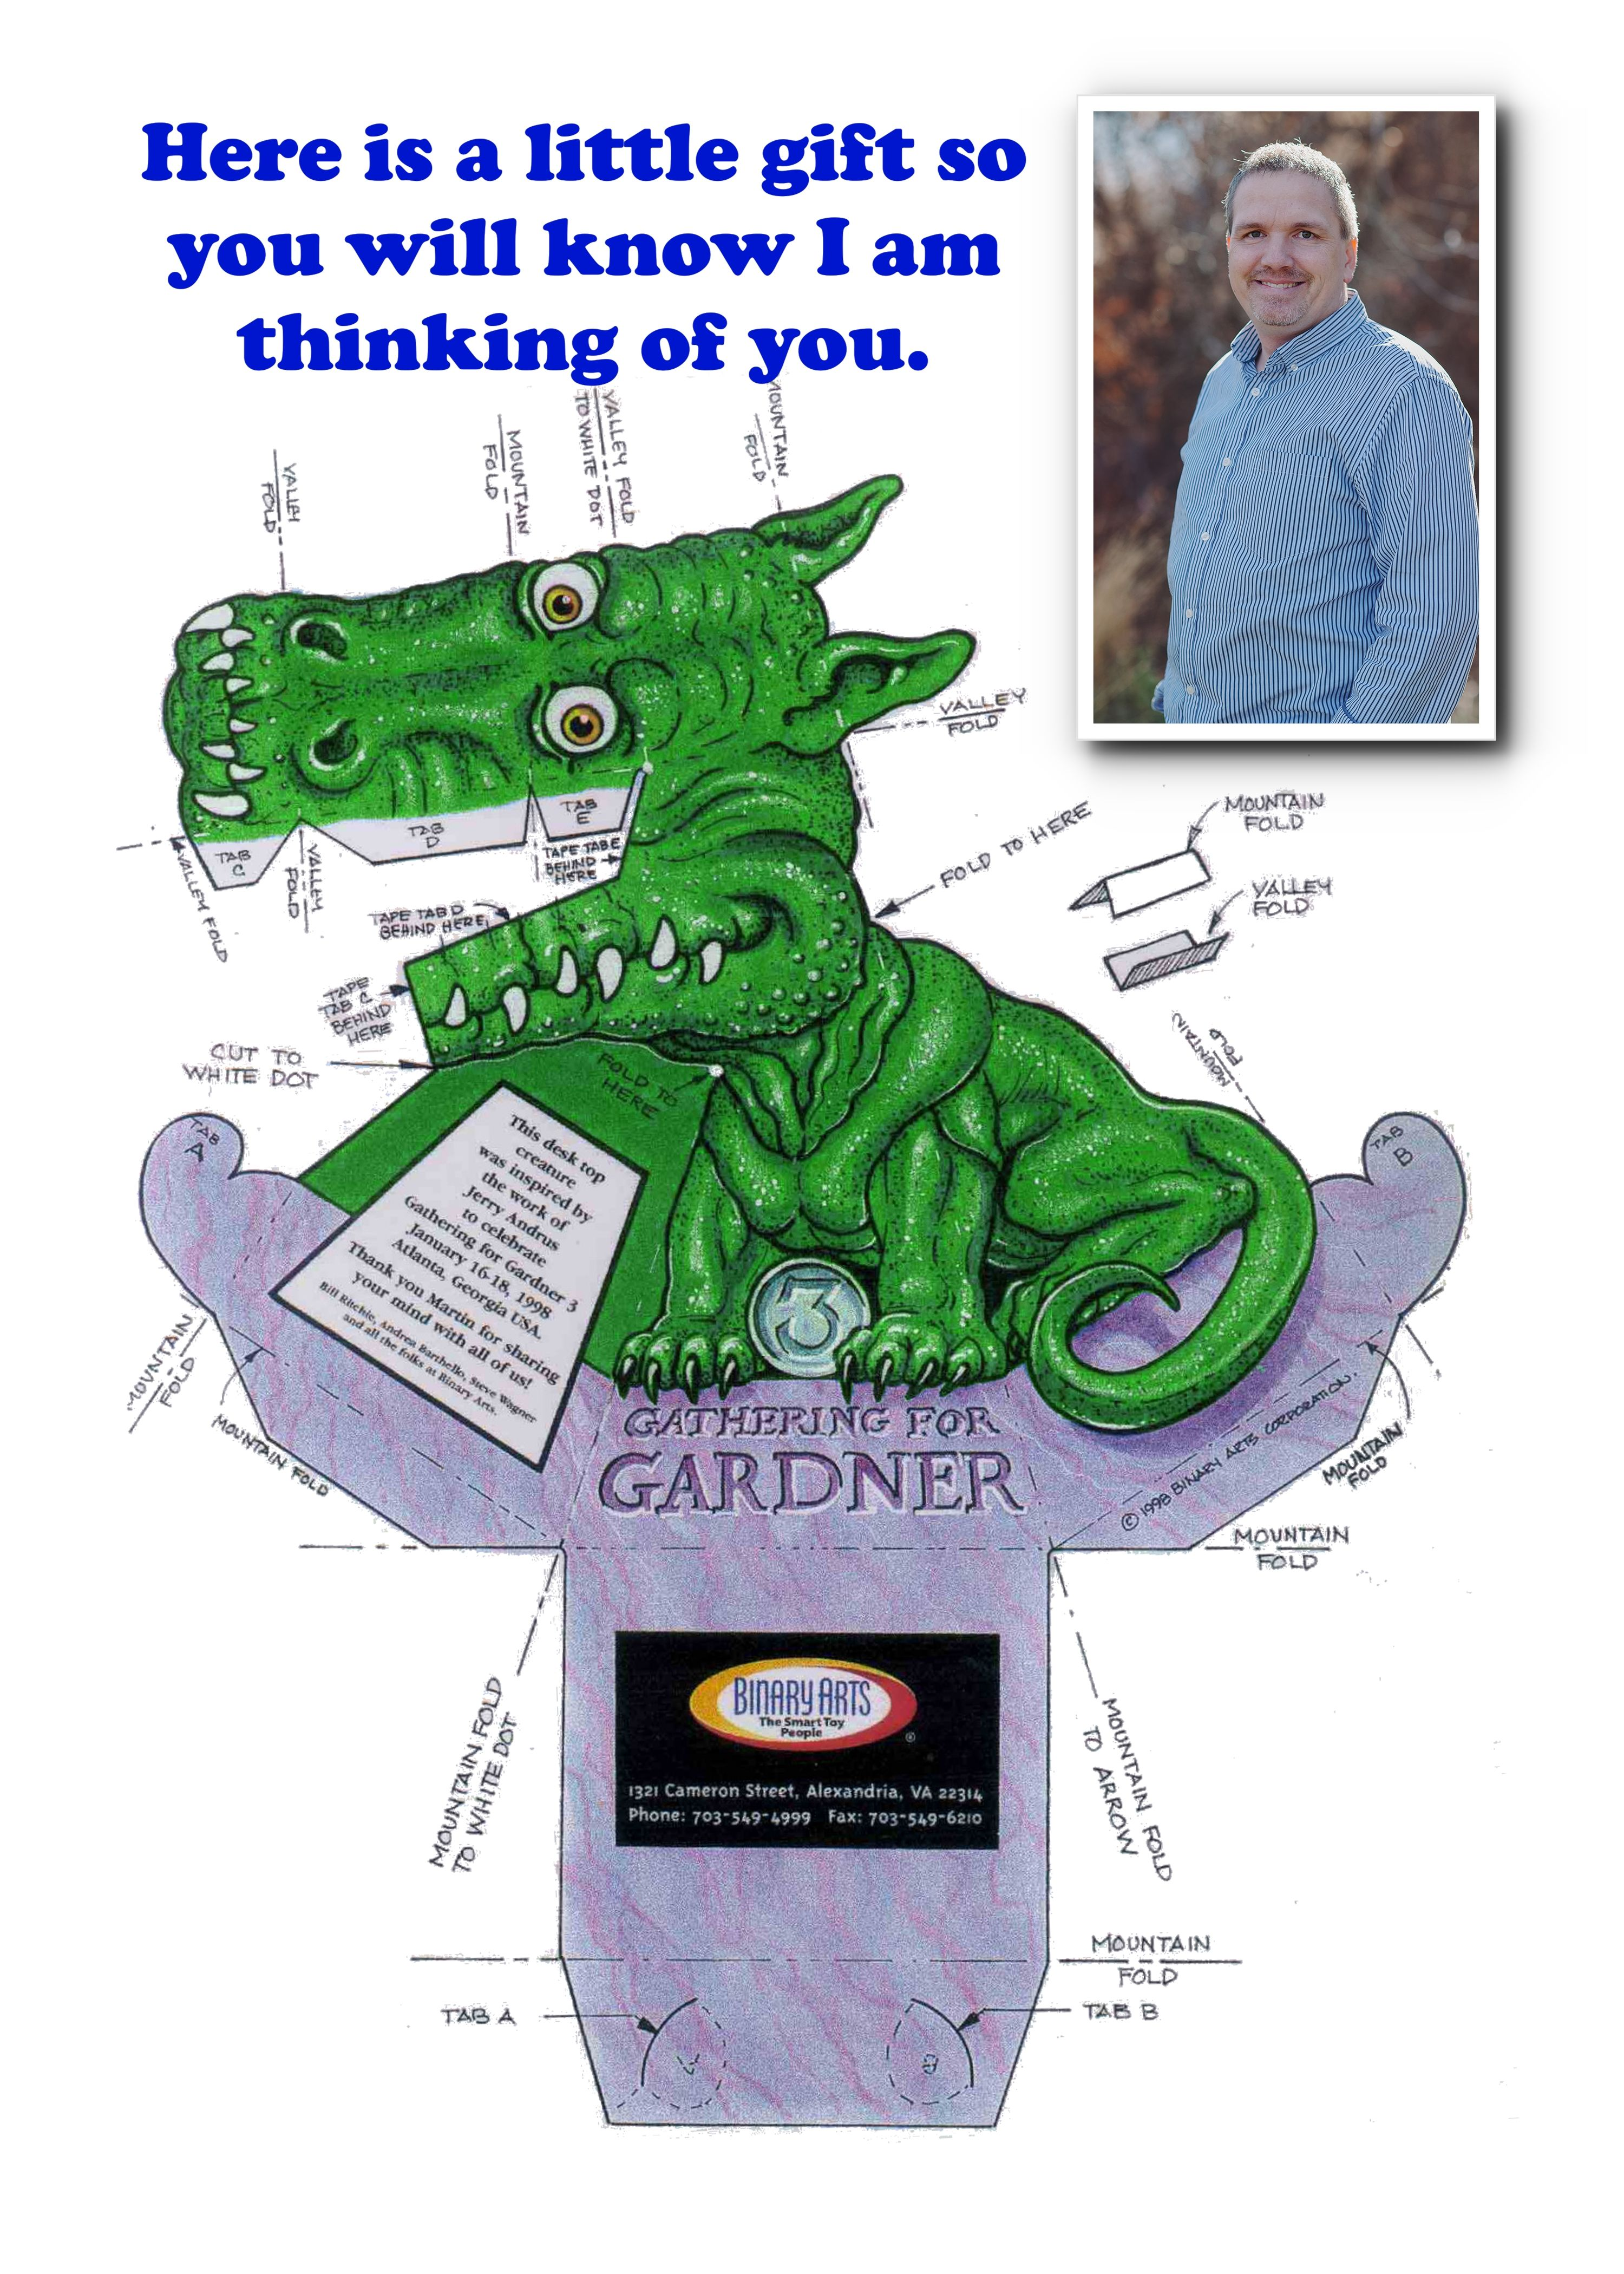 print and cut this dragon out for a fun 3 dimensional dragon thats head follows you - Cool Stuff To Print Out